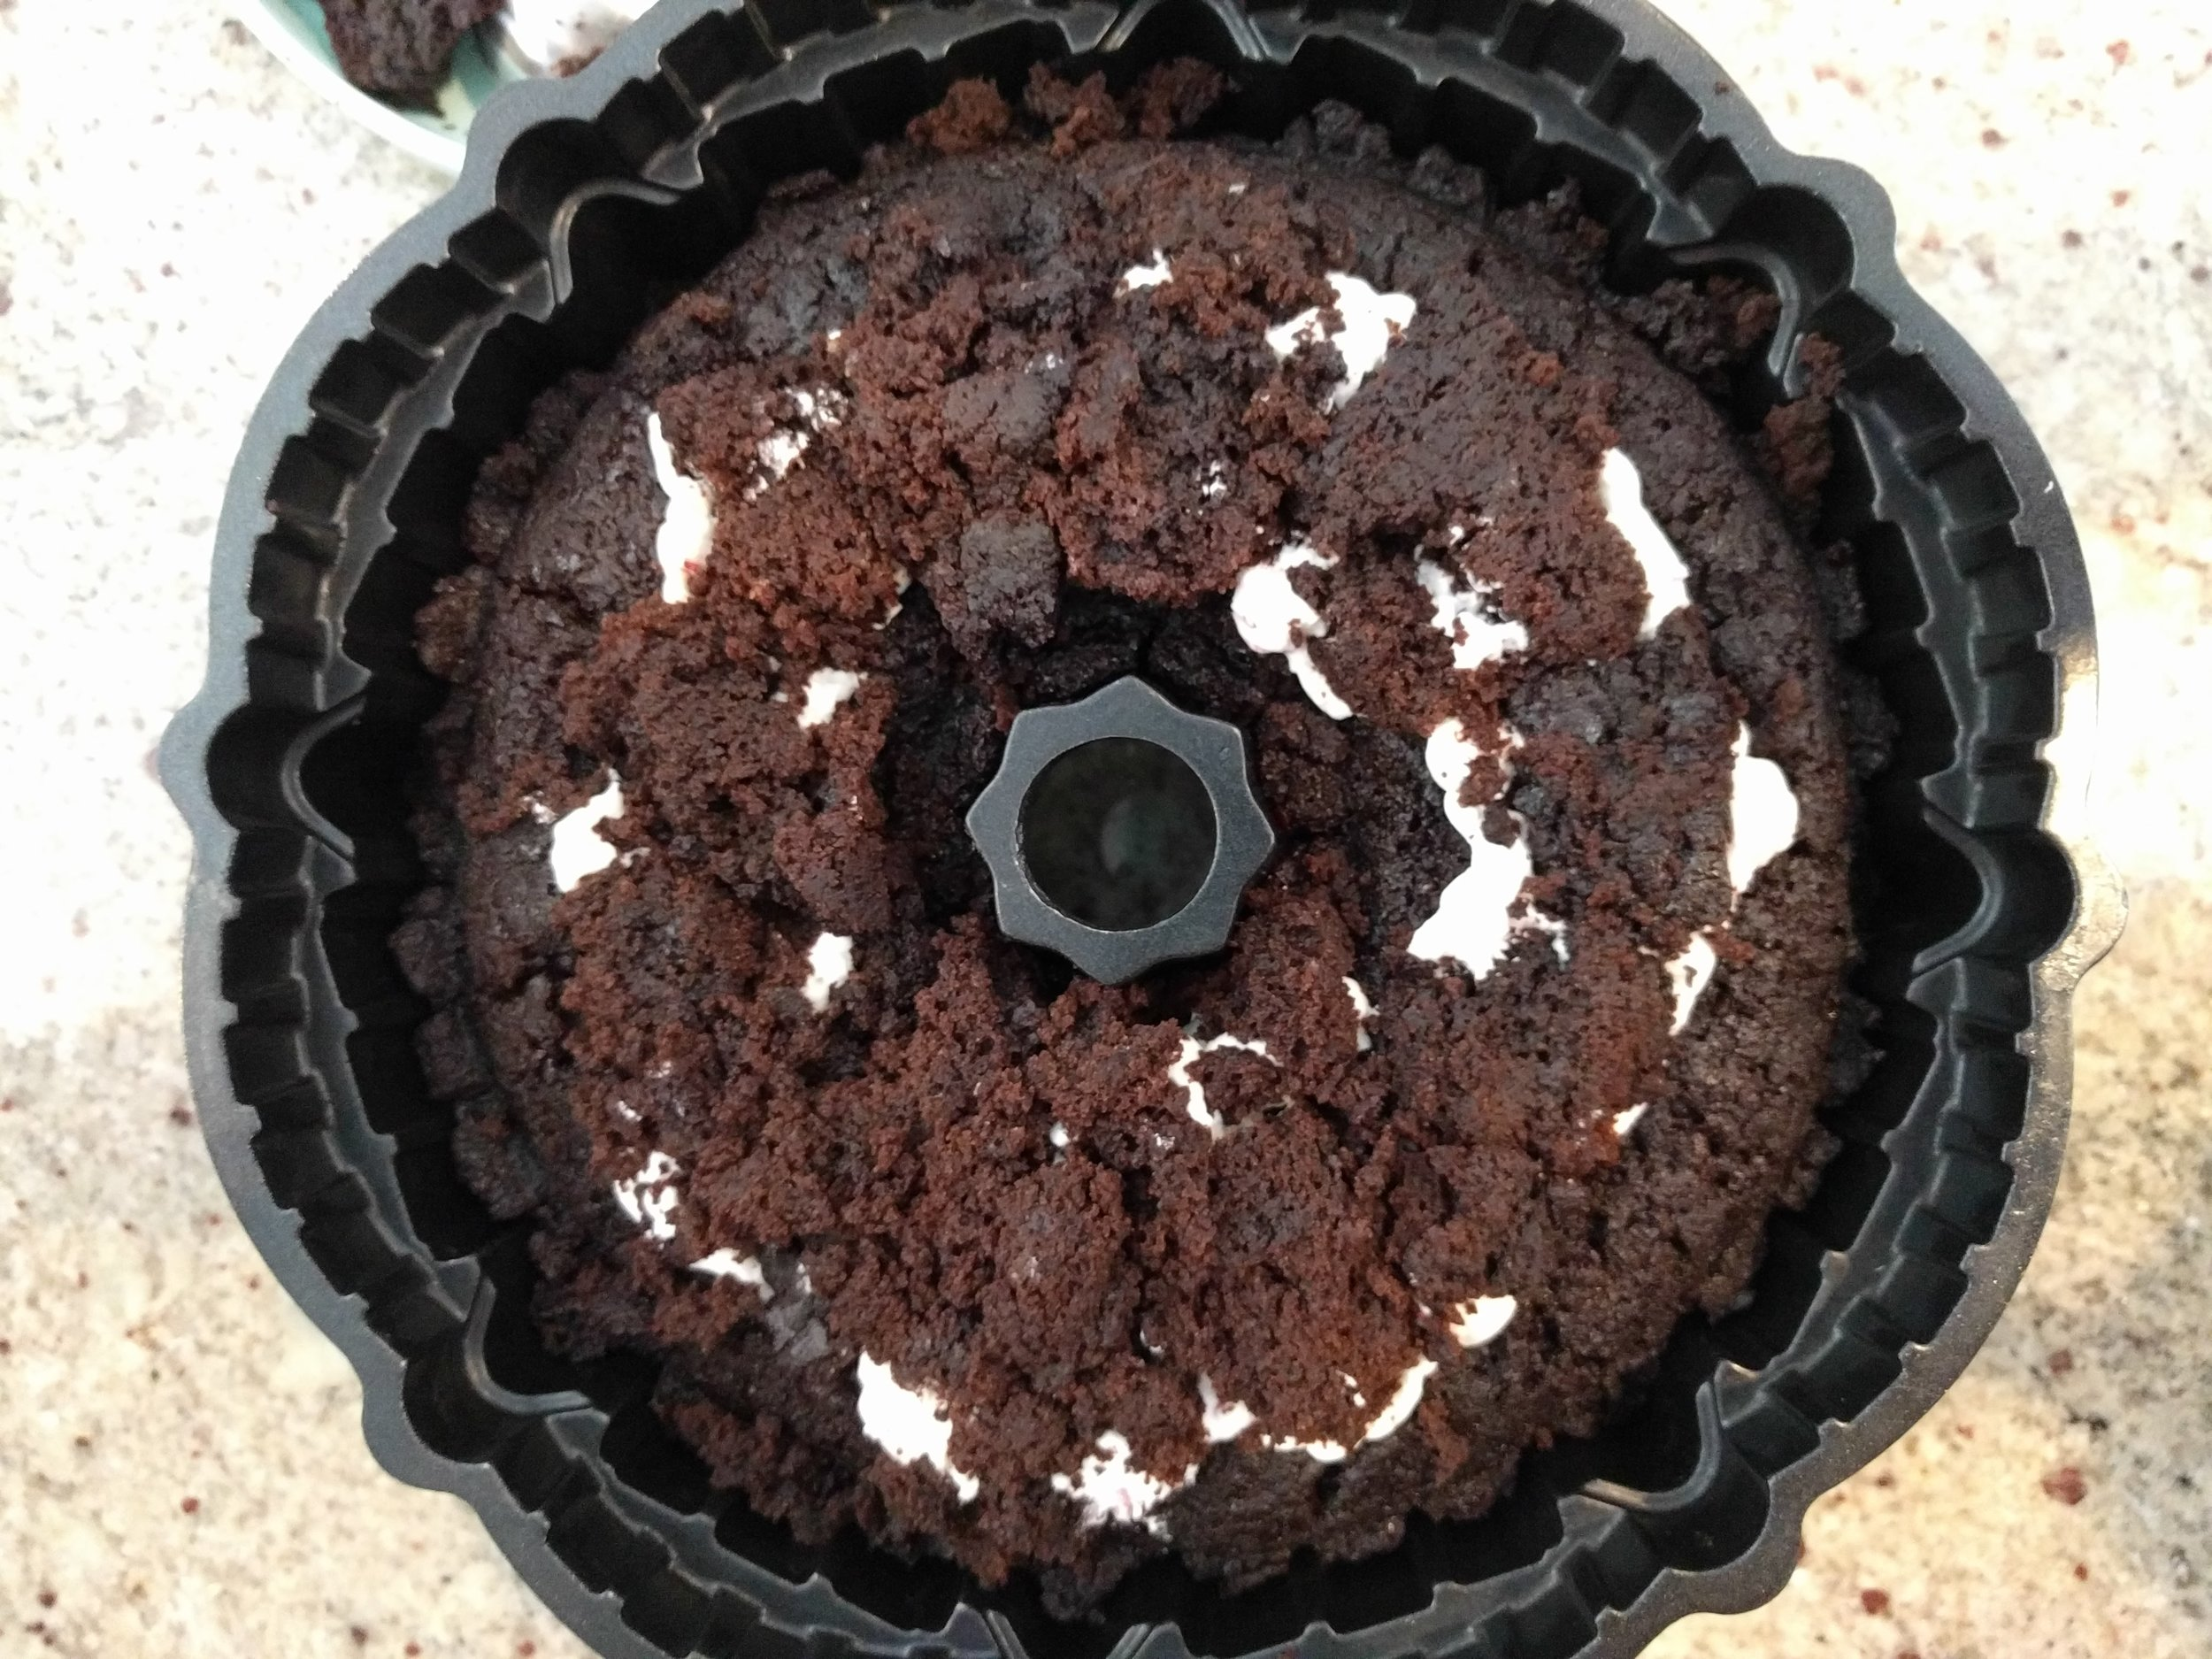 If you want, thought it's not necessary, you can cover the filling with some of the cake pieces you took out.